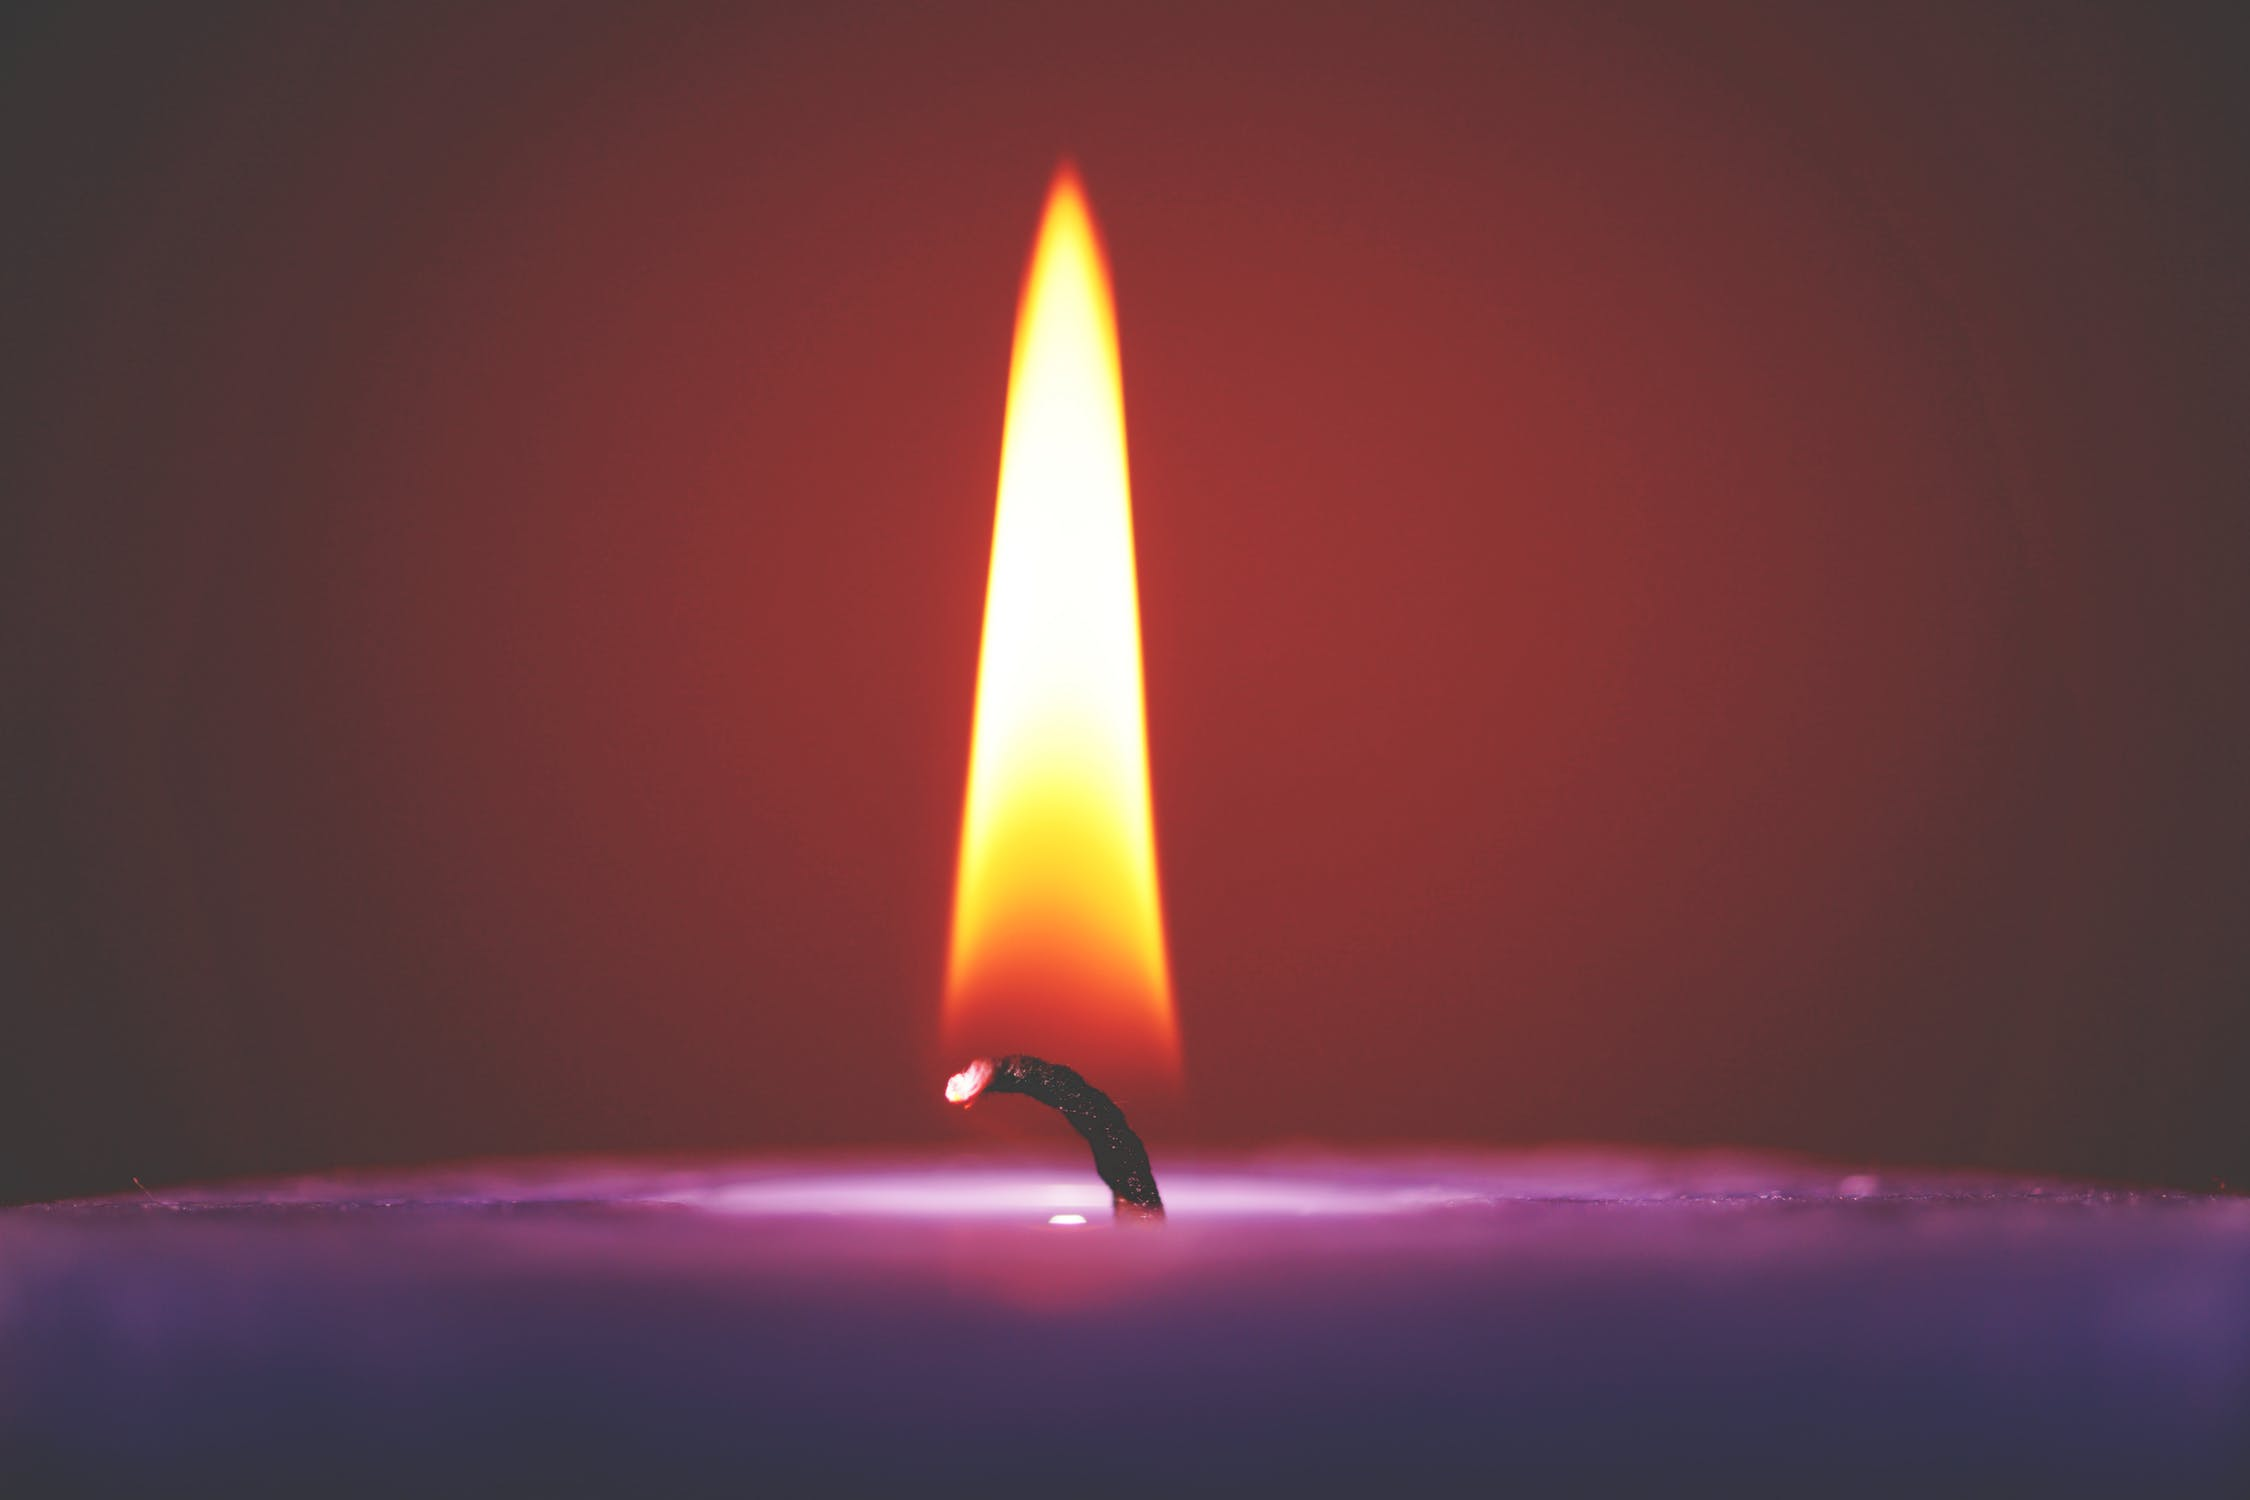 a purple-colored candle burning